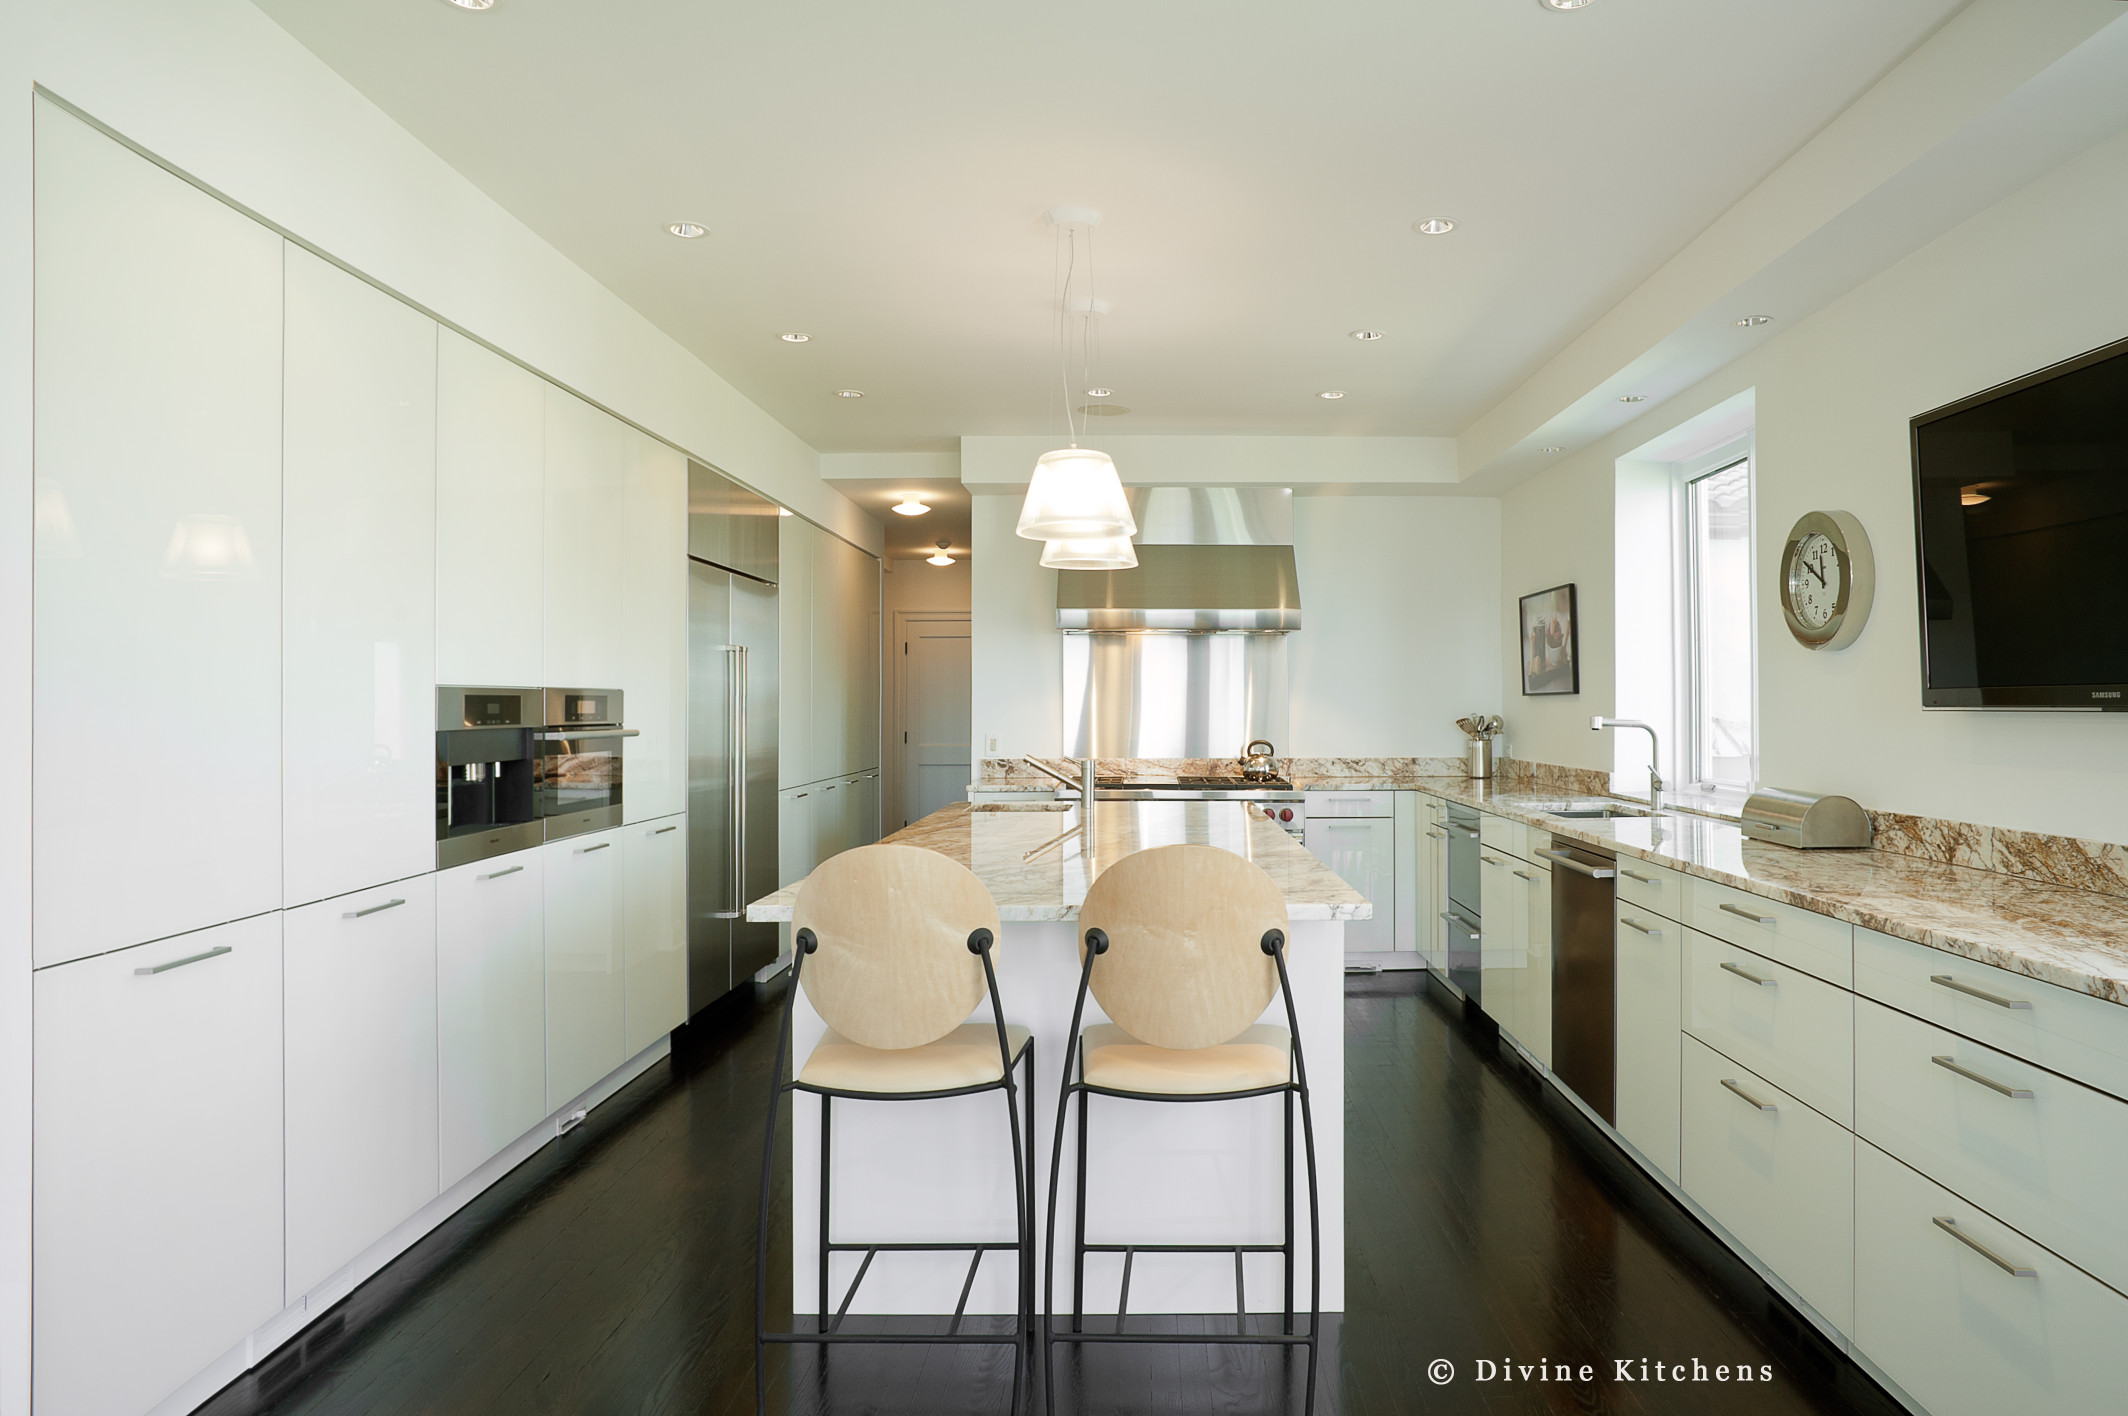 Modern leicht kitchen with high gloss lacquer cabinets. Marble countertops and wolf appliances.